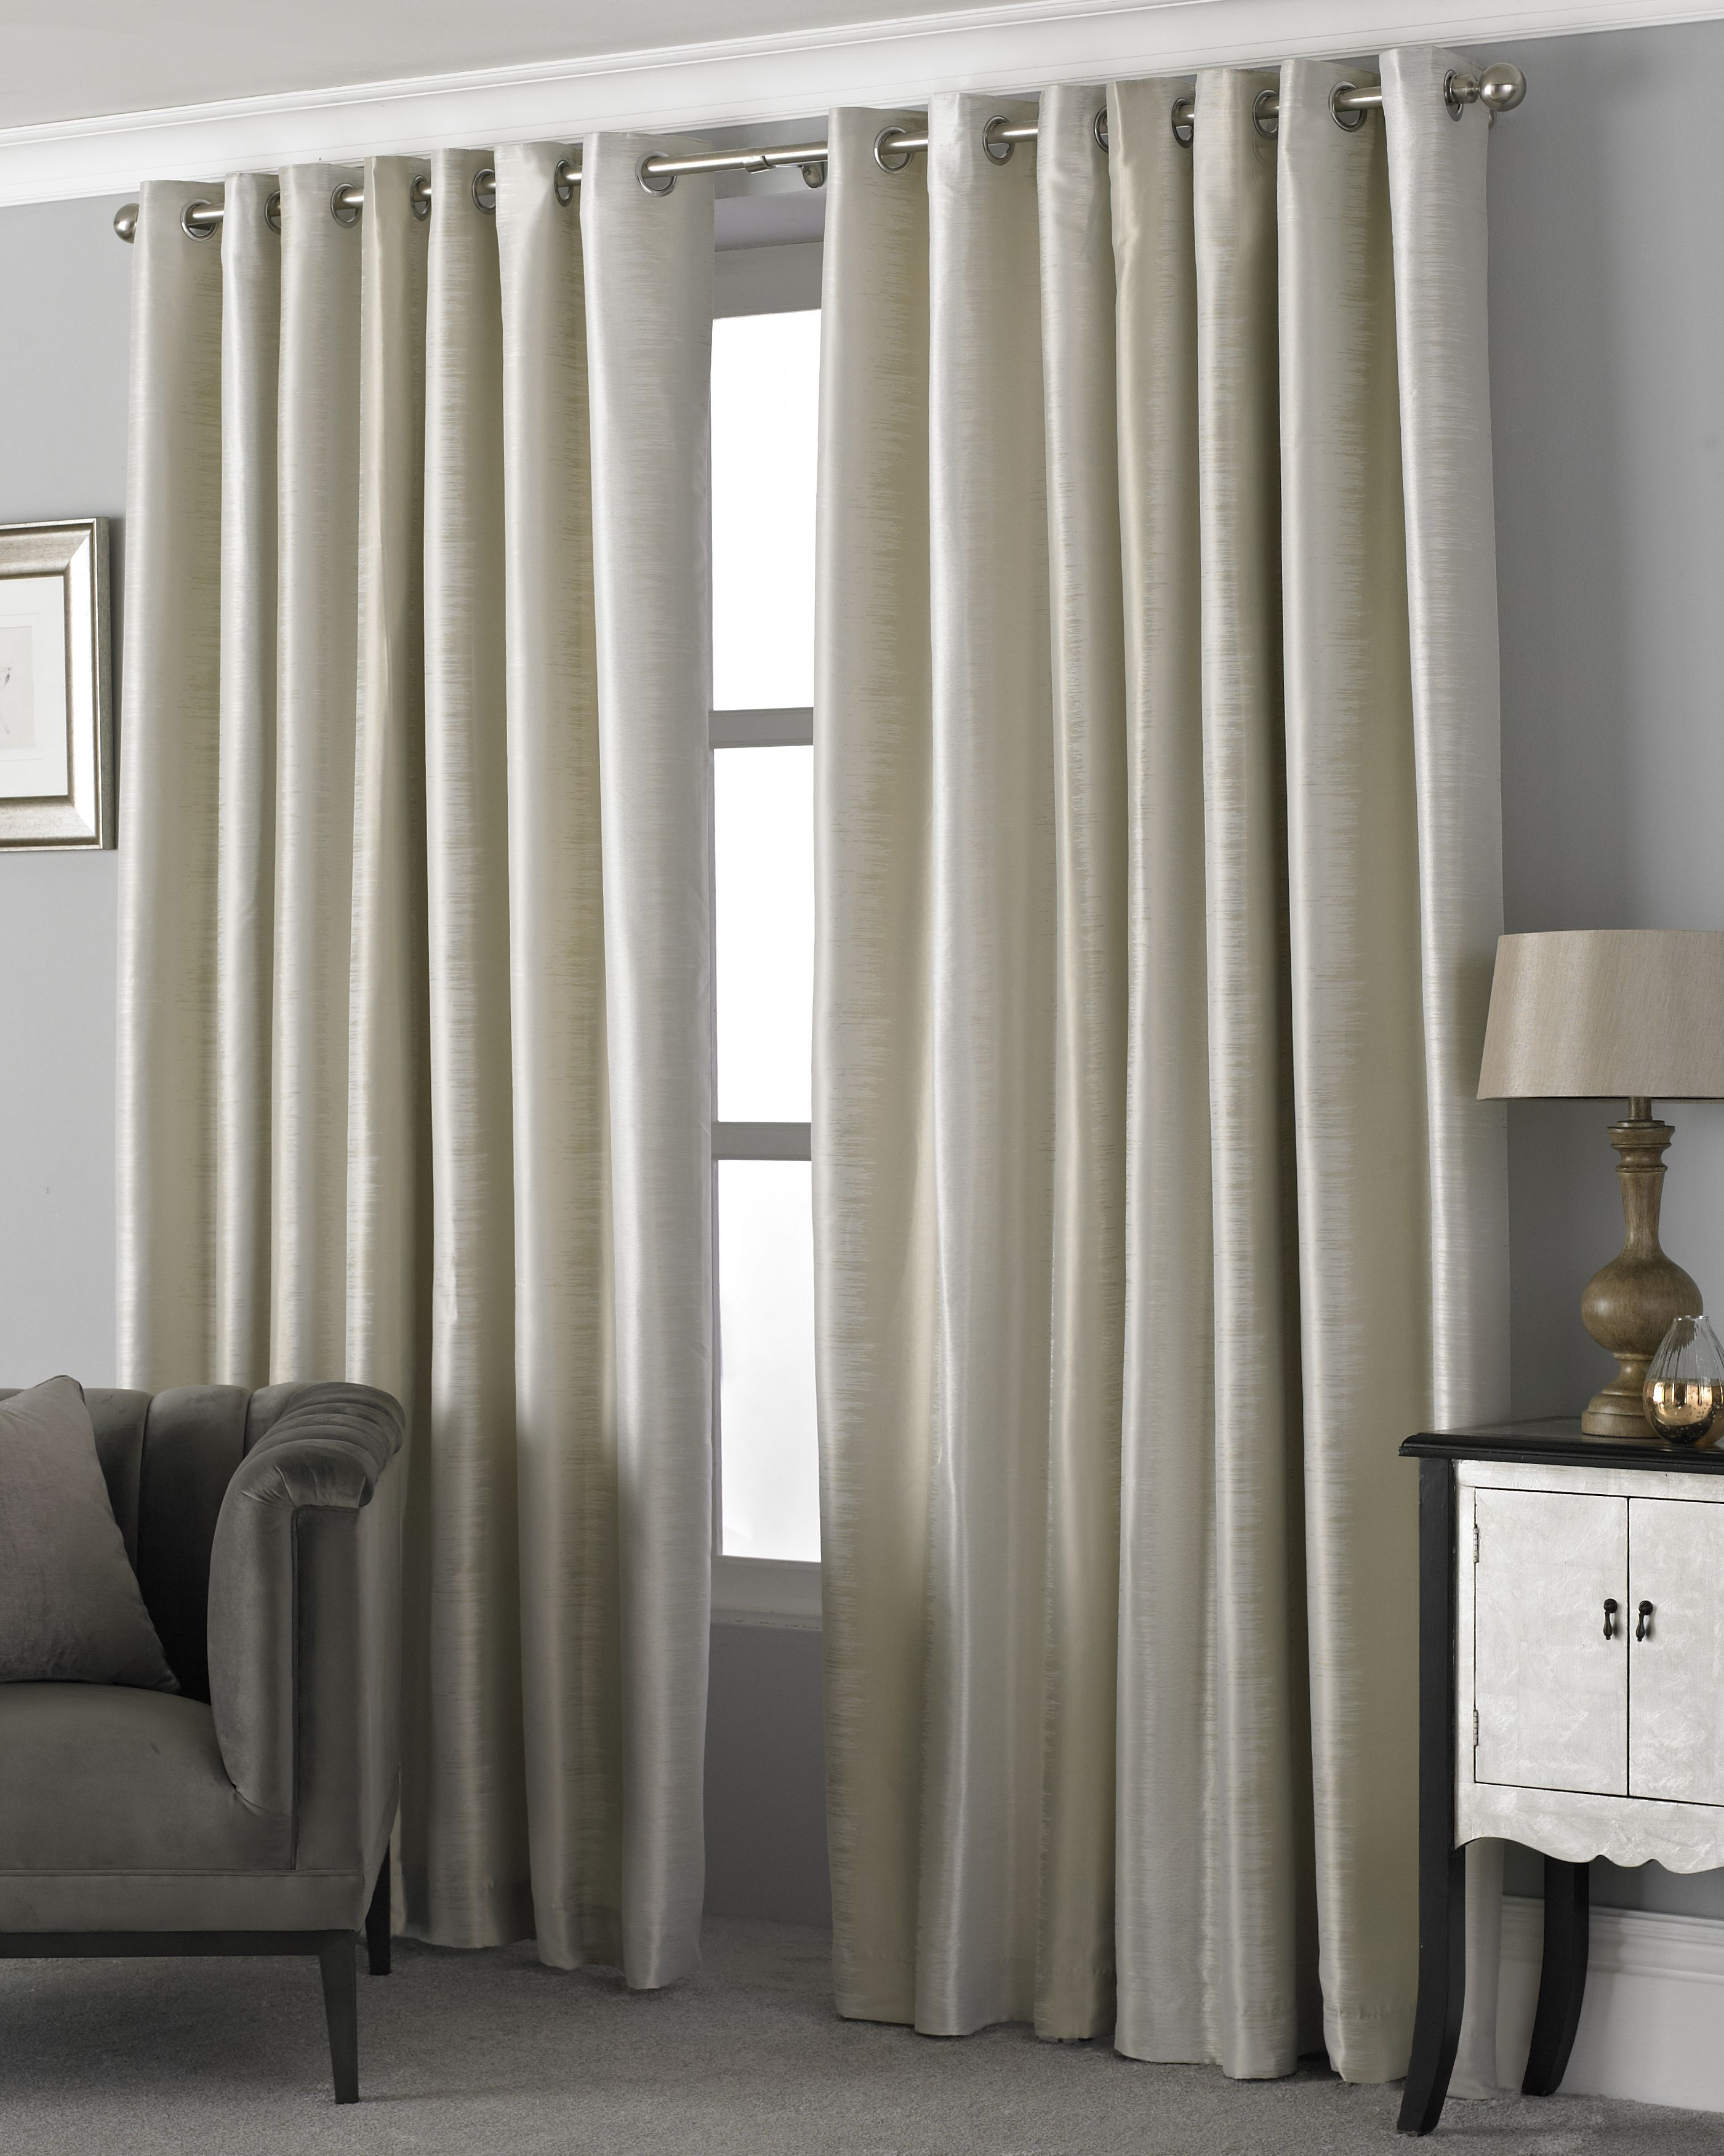 Hurlingham Shimmer Eyelet Curtains in Champagne